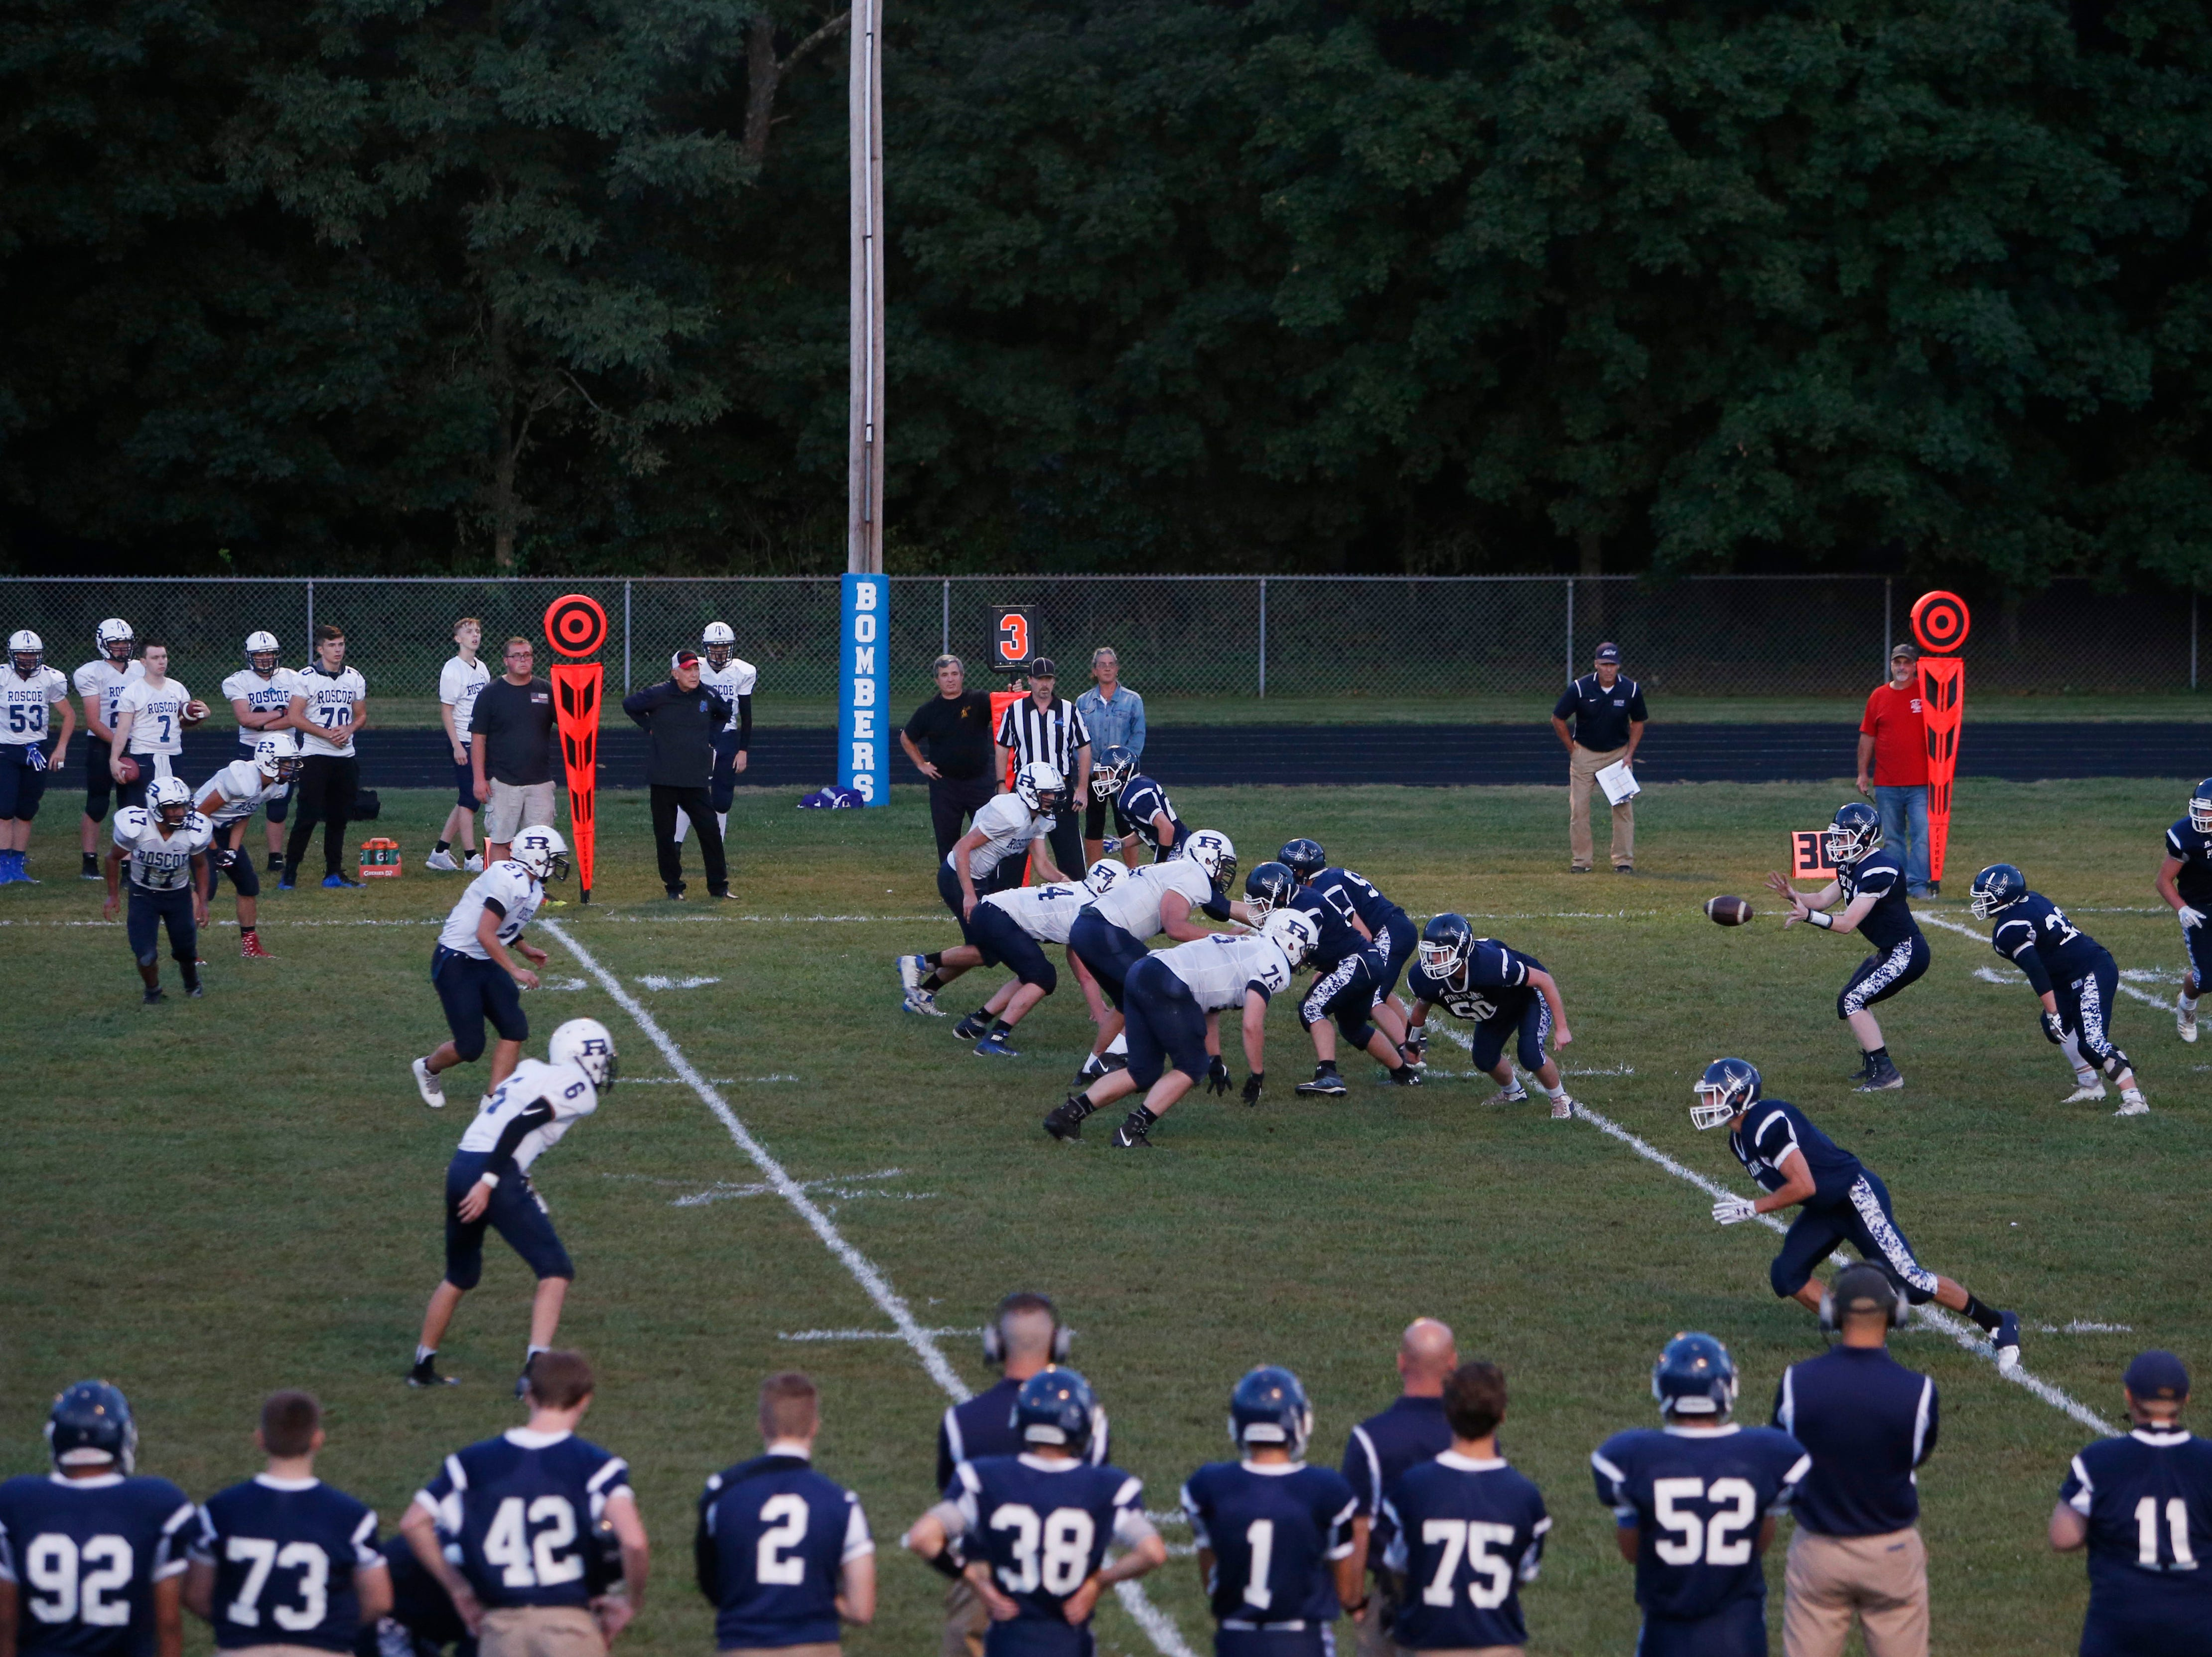 Pine Plains and Roscoe during Friday's game at Stissing Mountain High School on September 7, 2018. Friday marks the start of the 8-man football season.